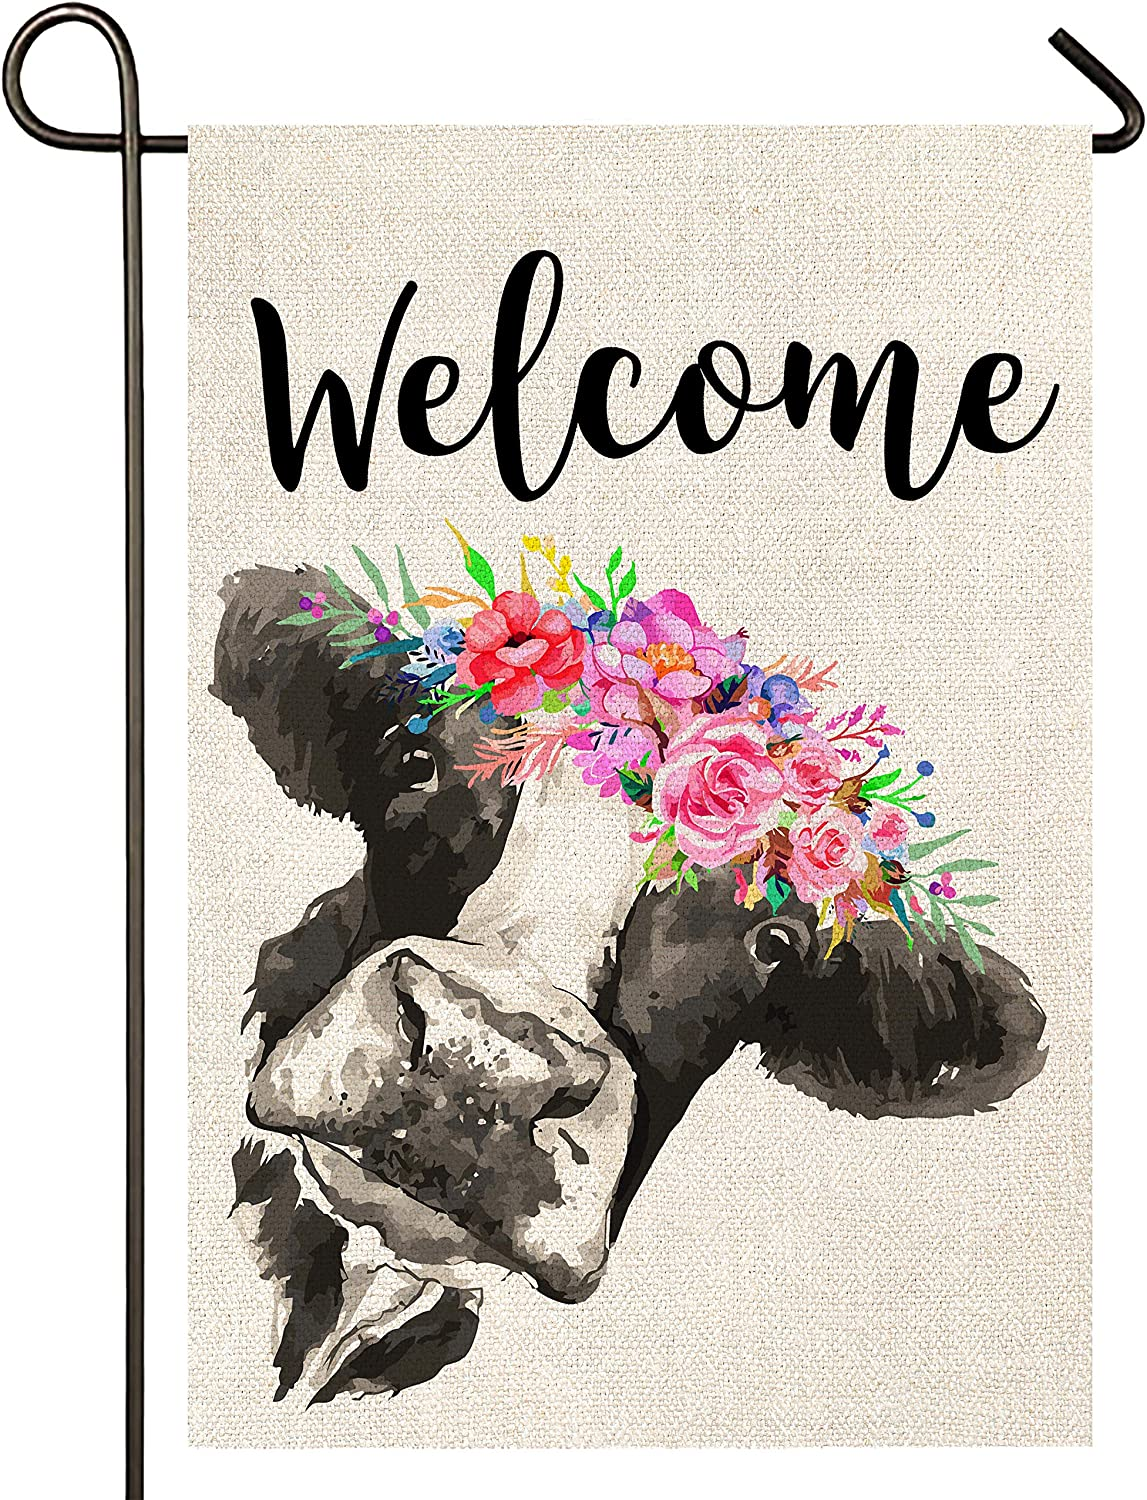 Atenia Welcome Floral Crown Cow Garden Burlap Flag, Double Sided Welcome Garden Outdoor Yard Flags for Summer Decor (Garden Size - 12.5X18)